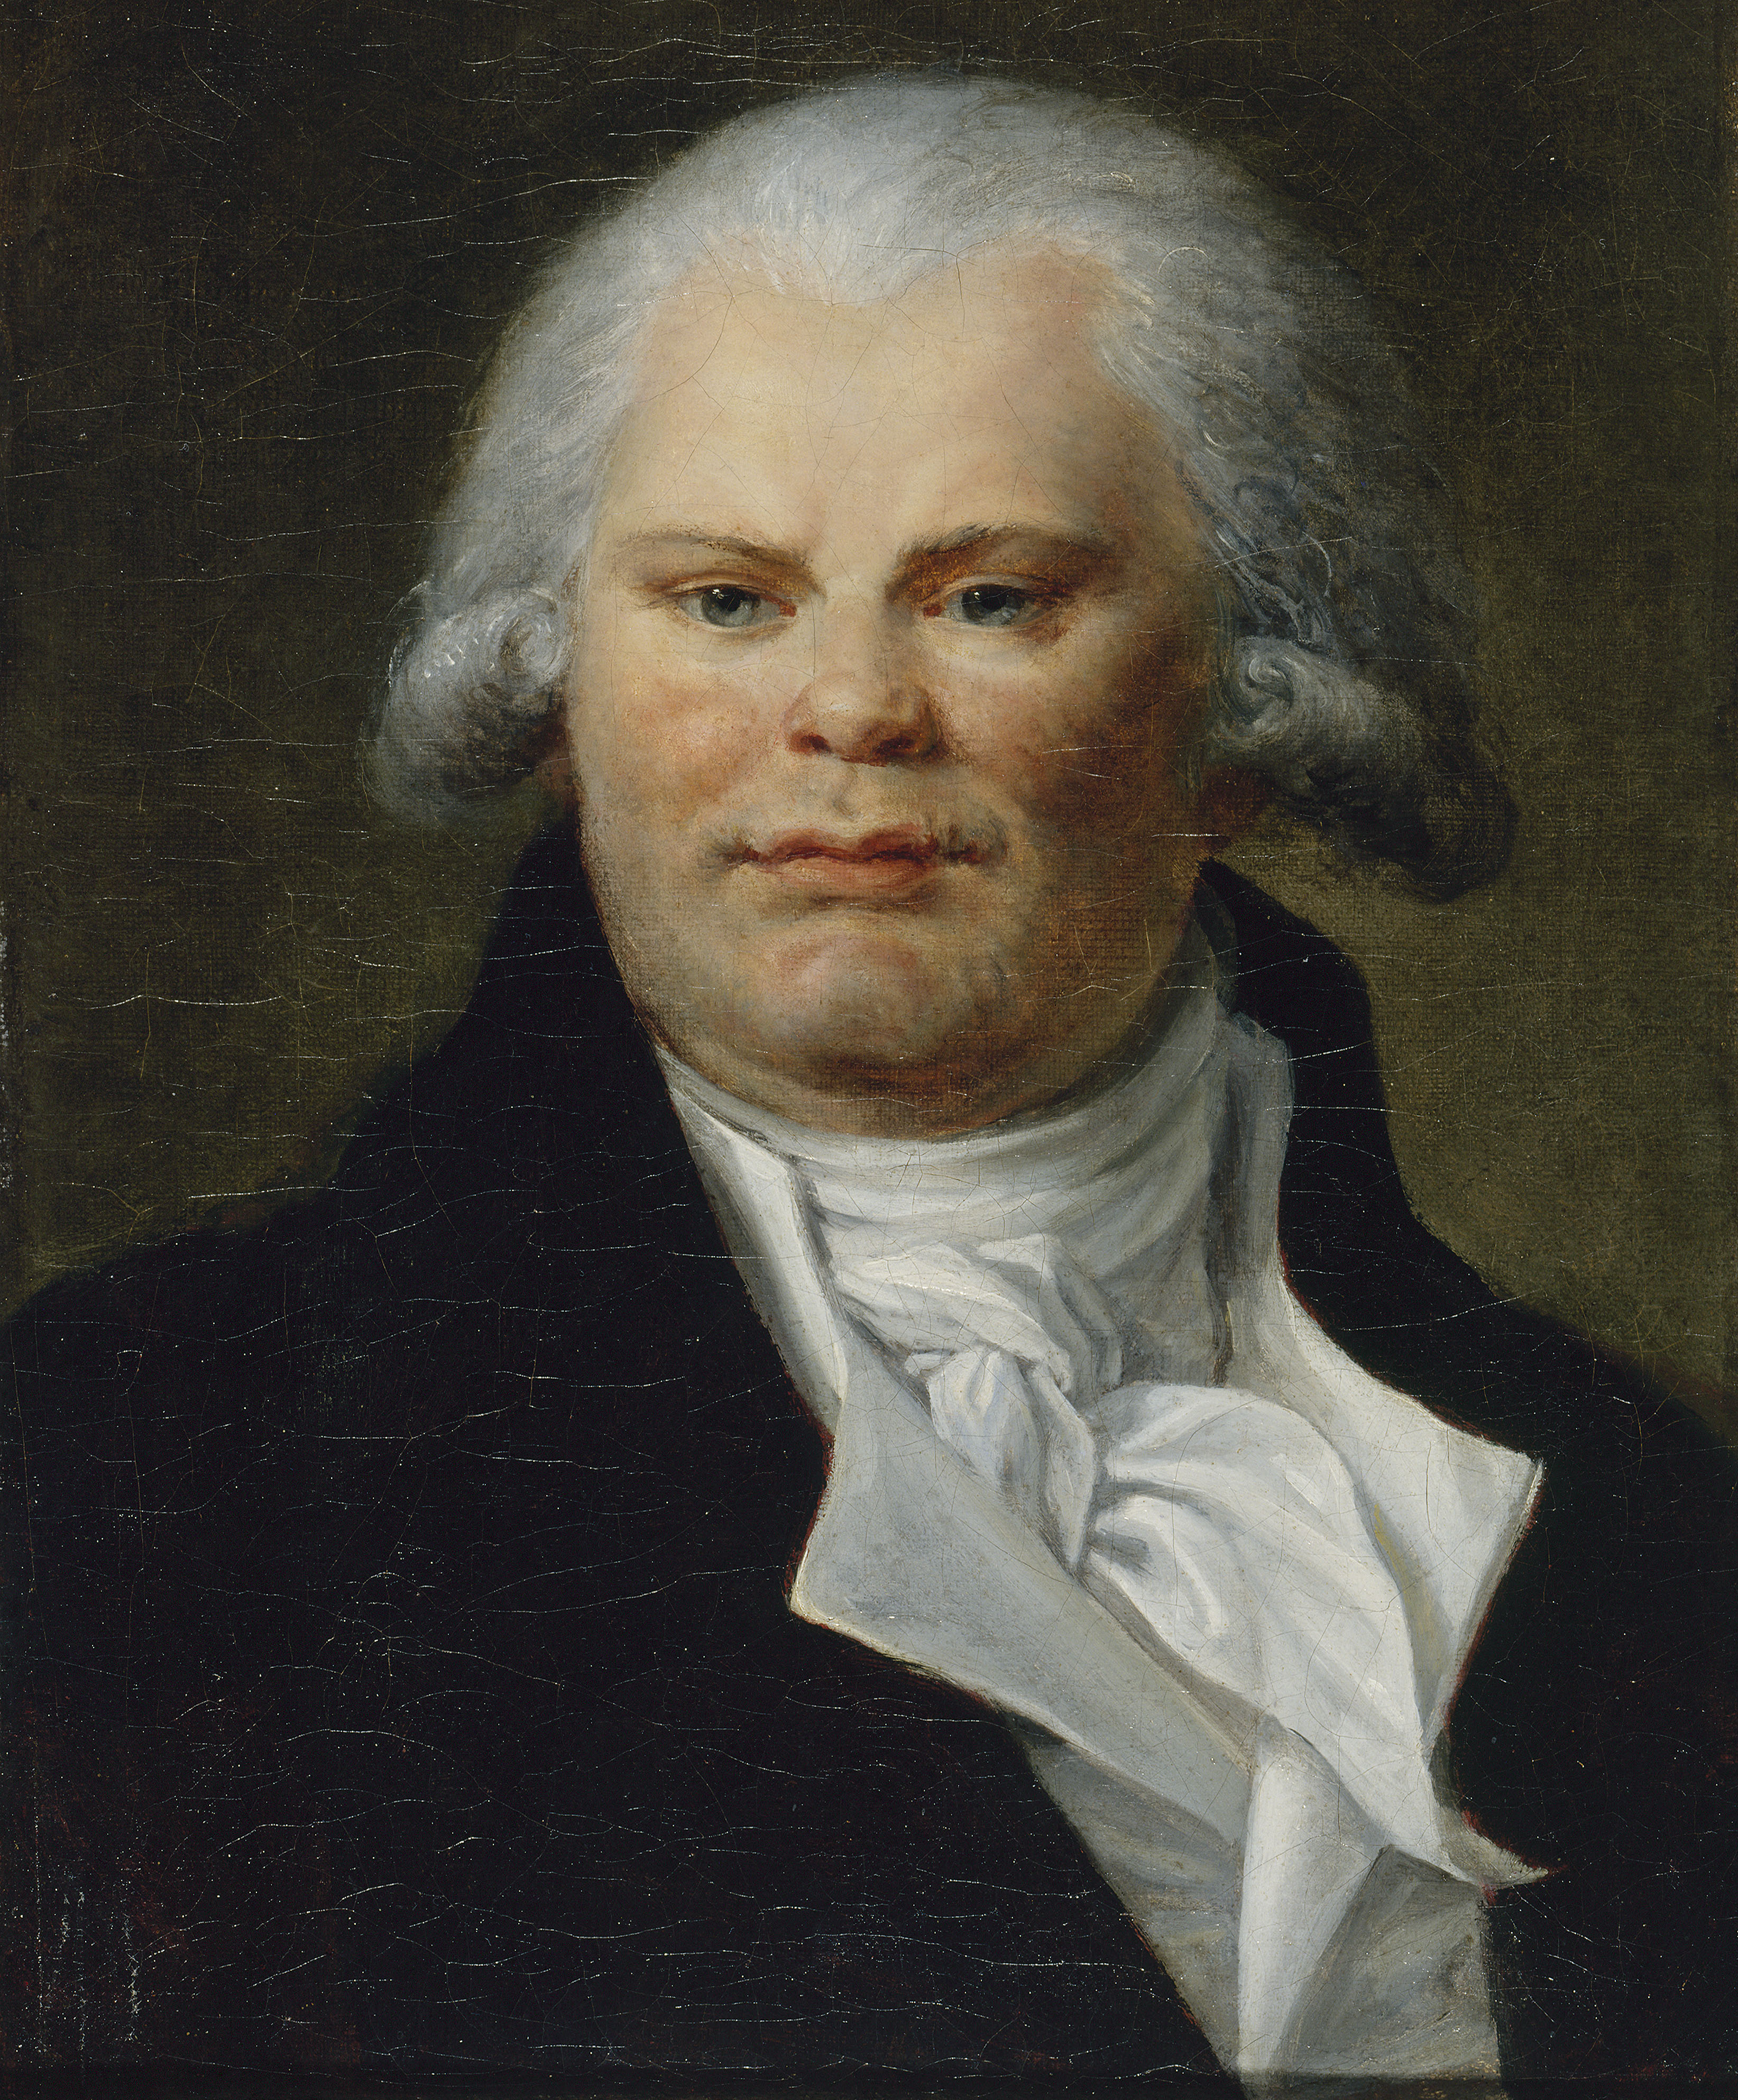 Georges Jacques Danton - Wikiwand